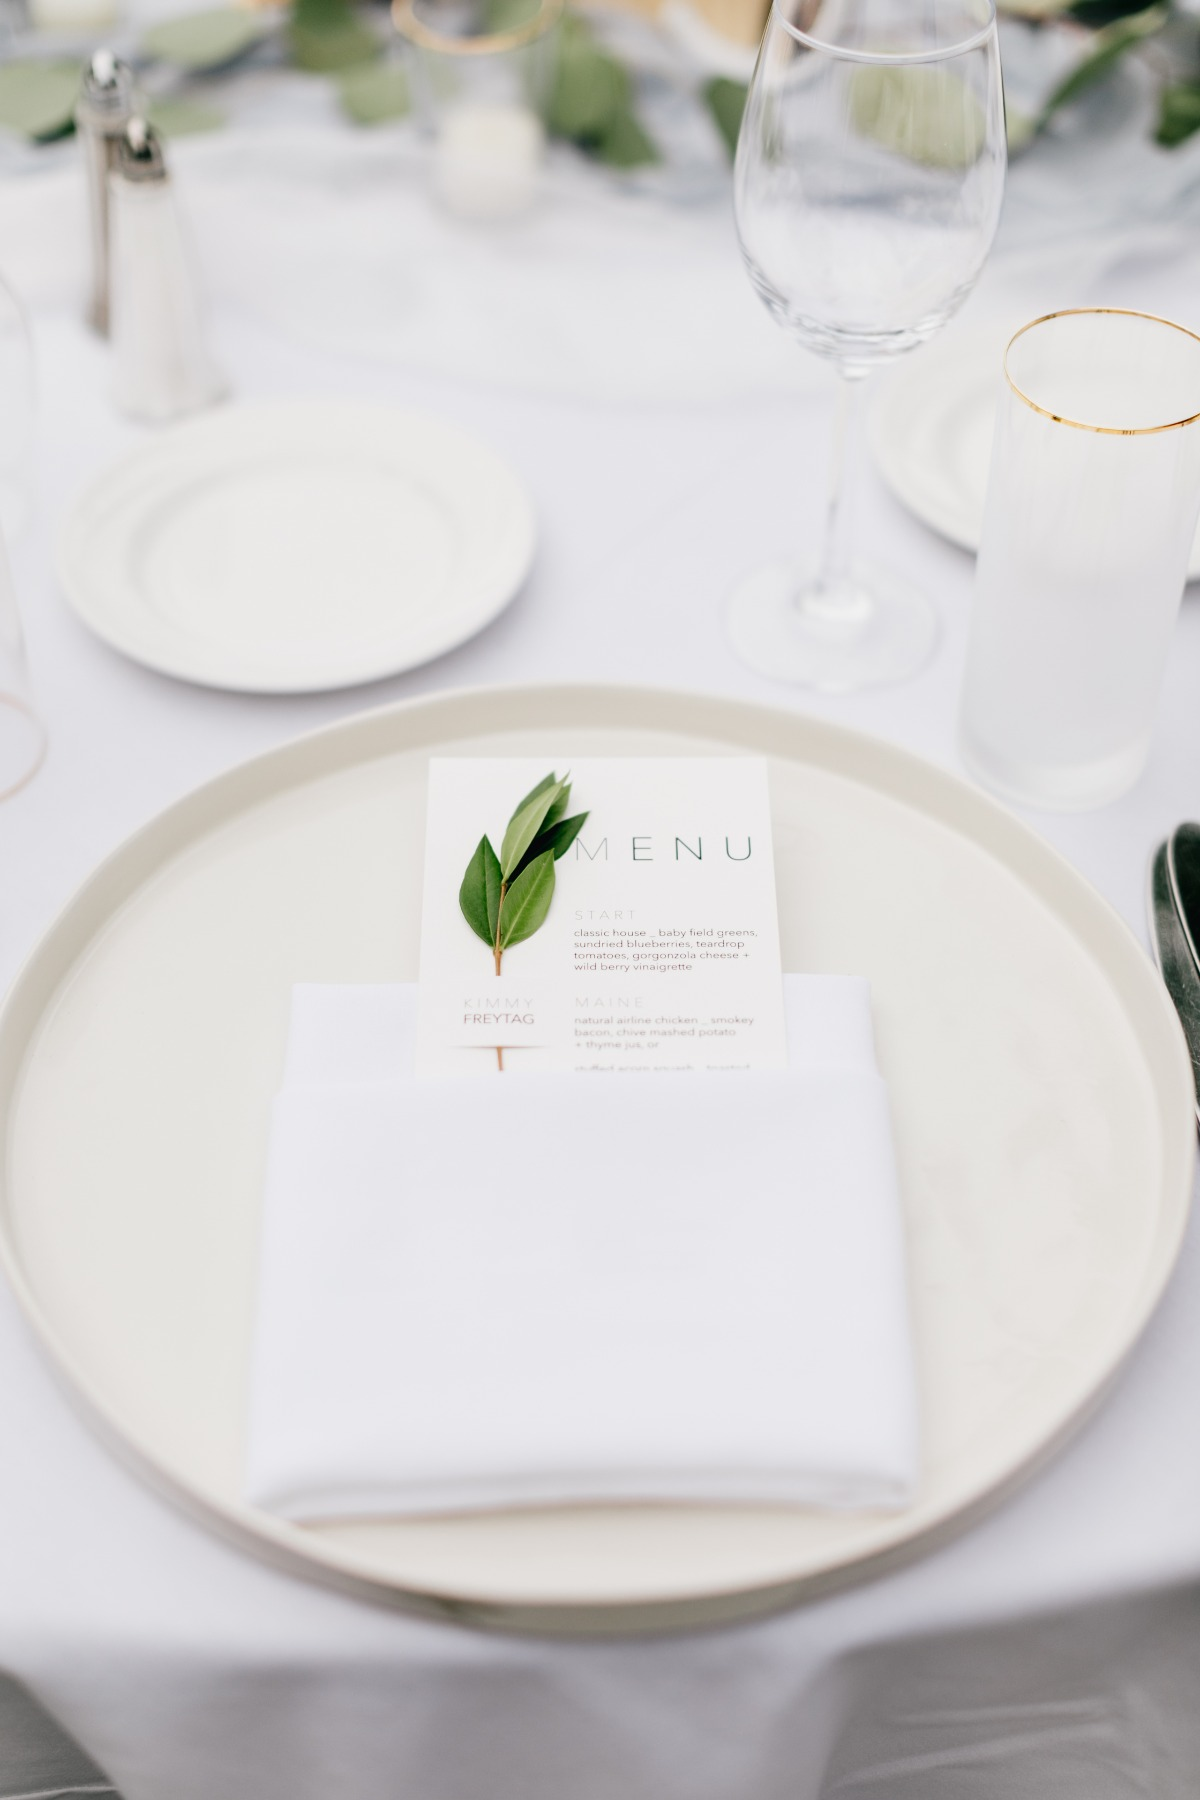 Simple wedding menu design